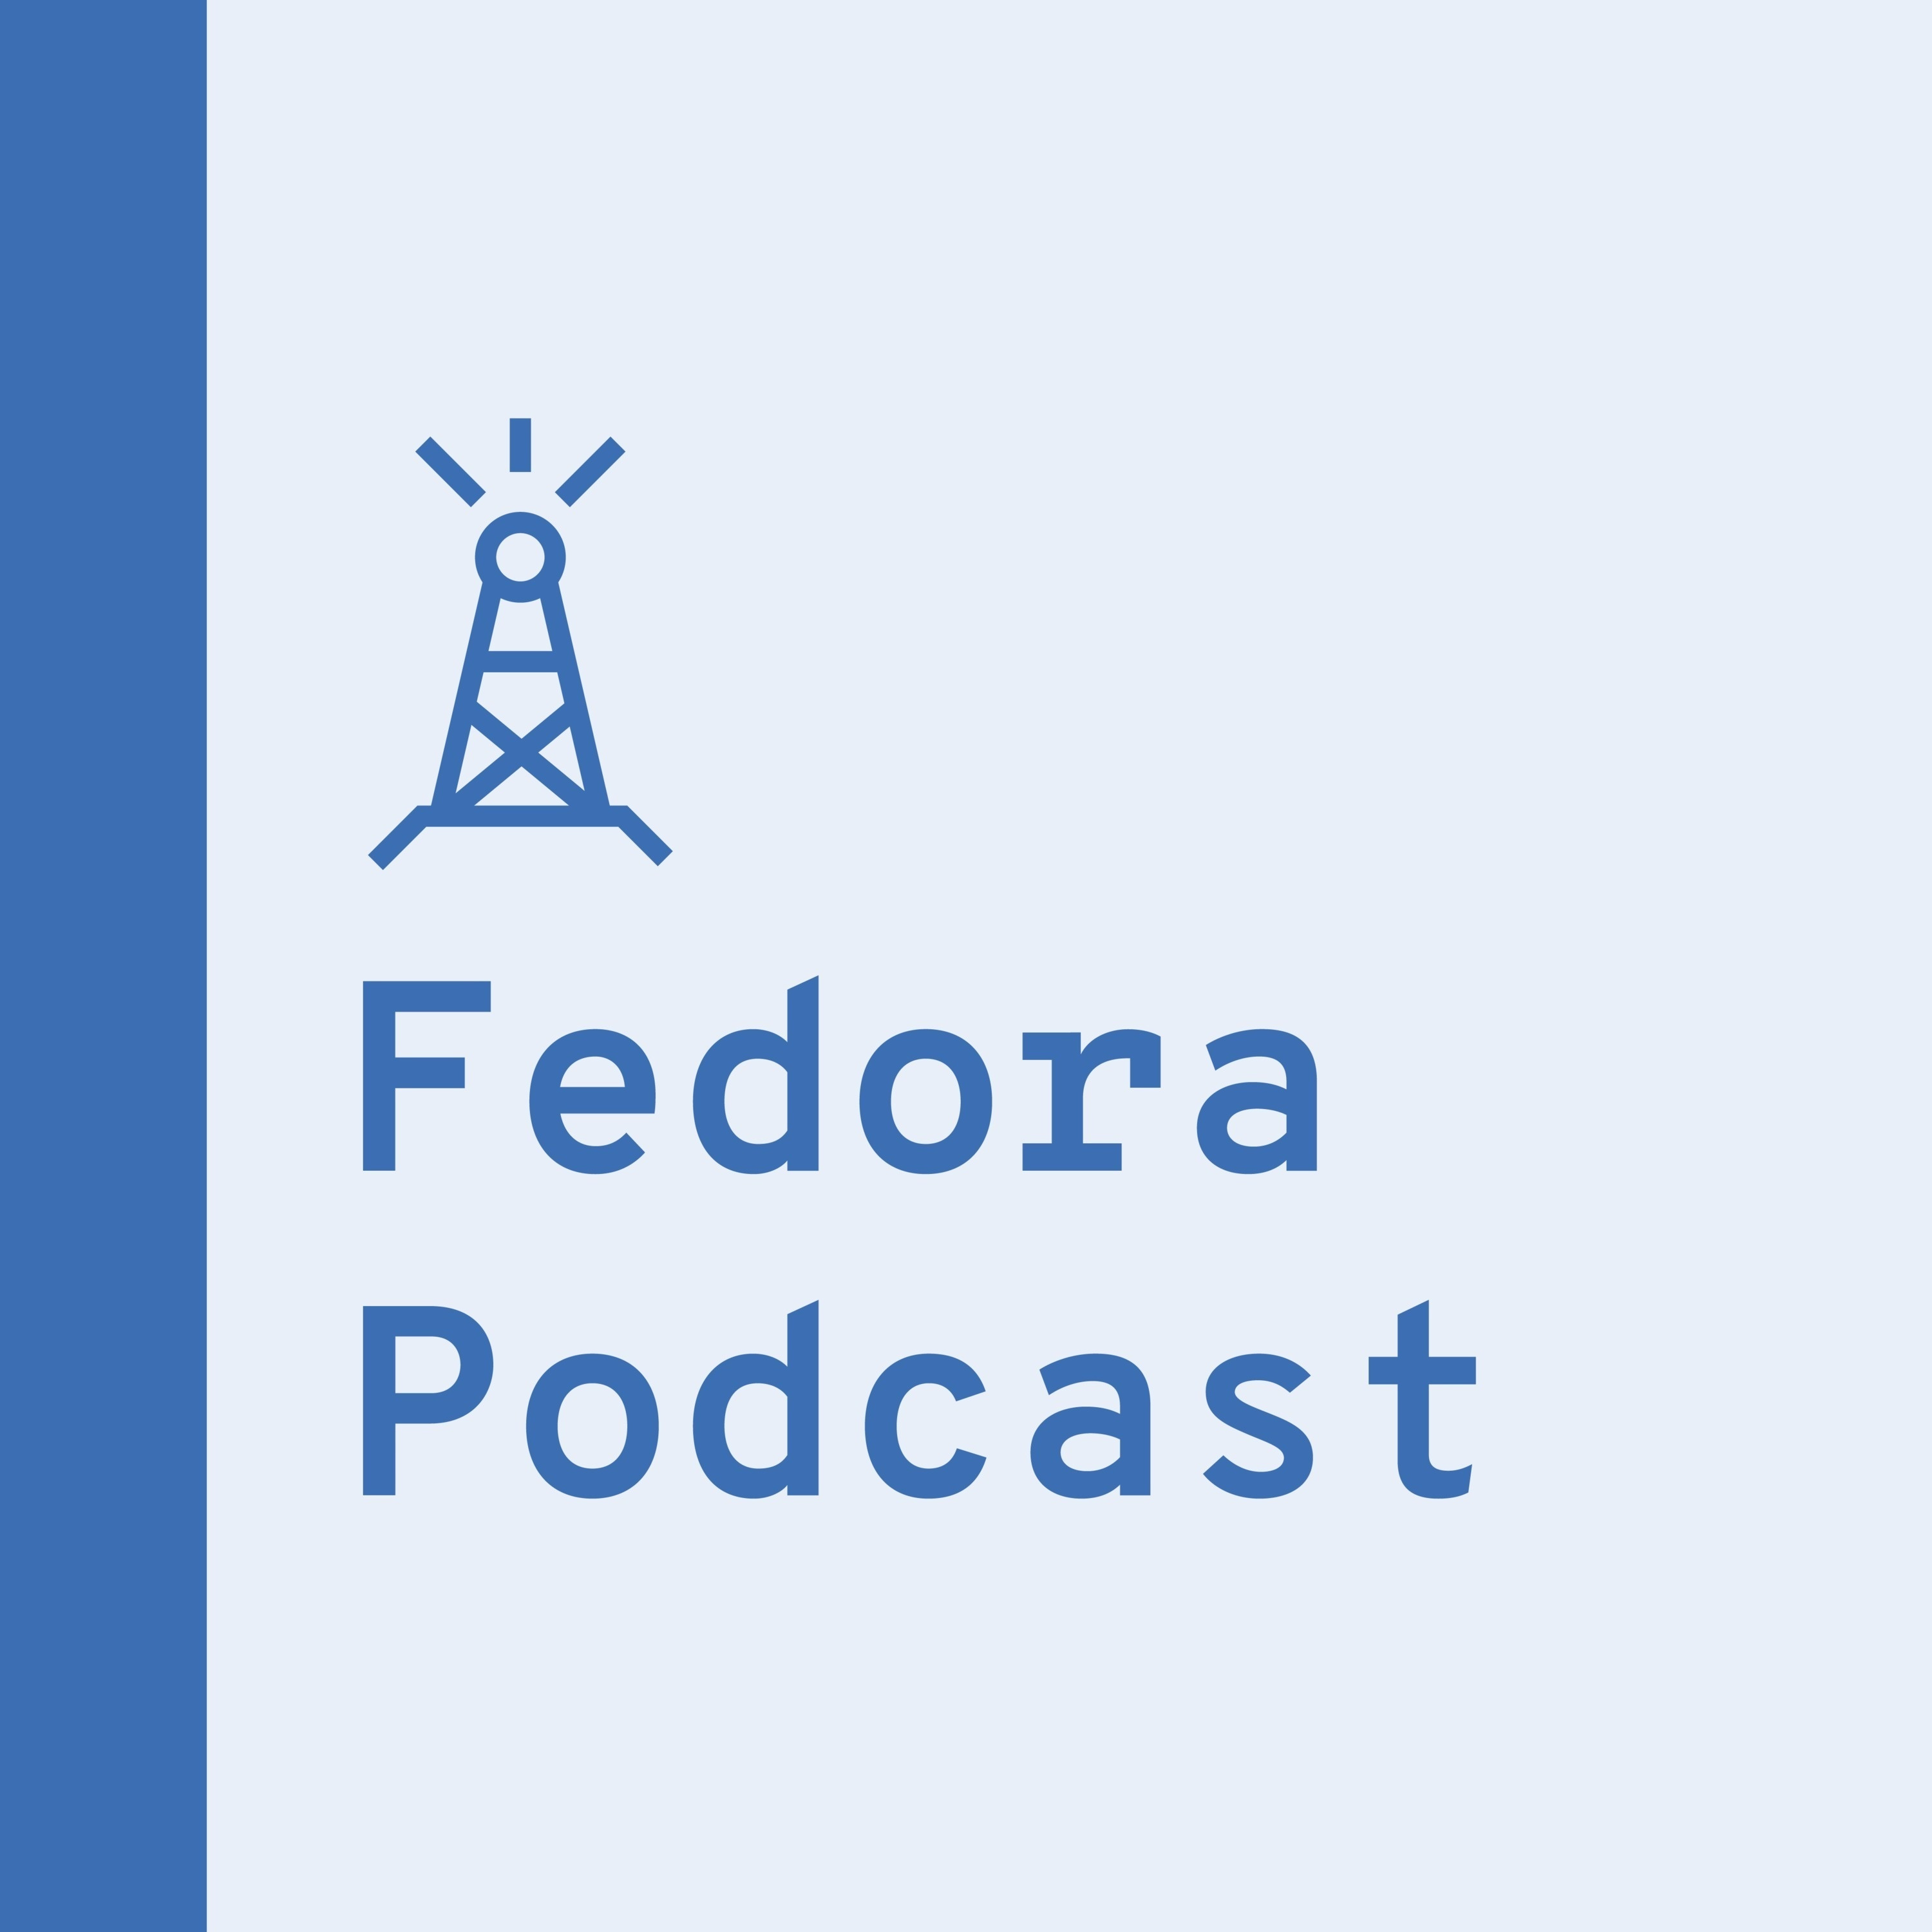 Fedora Project Podcast | Listen to the Most Popular Podcasts